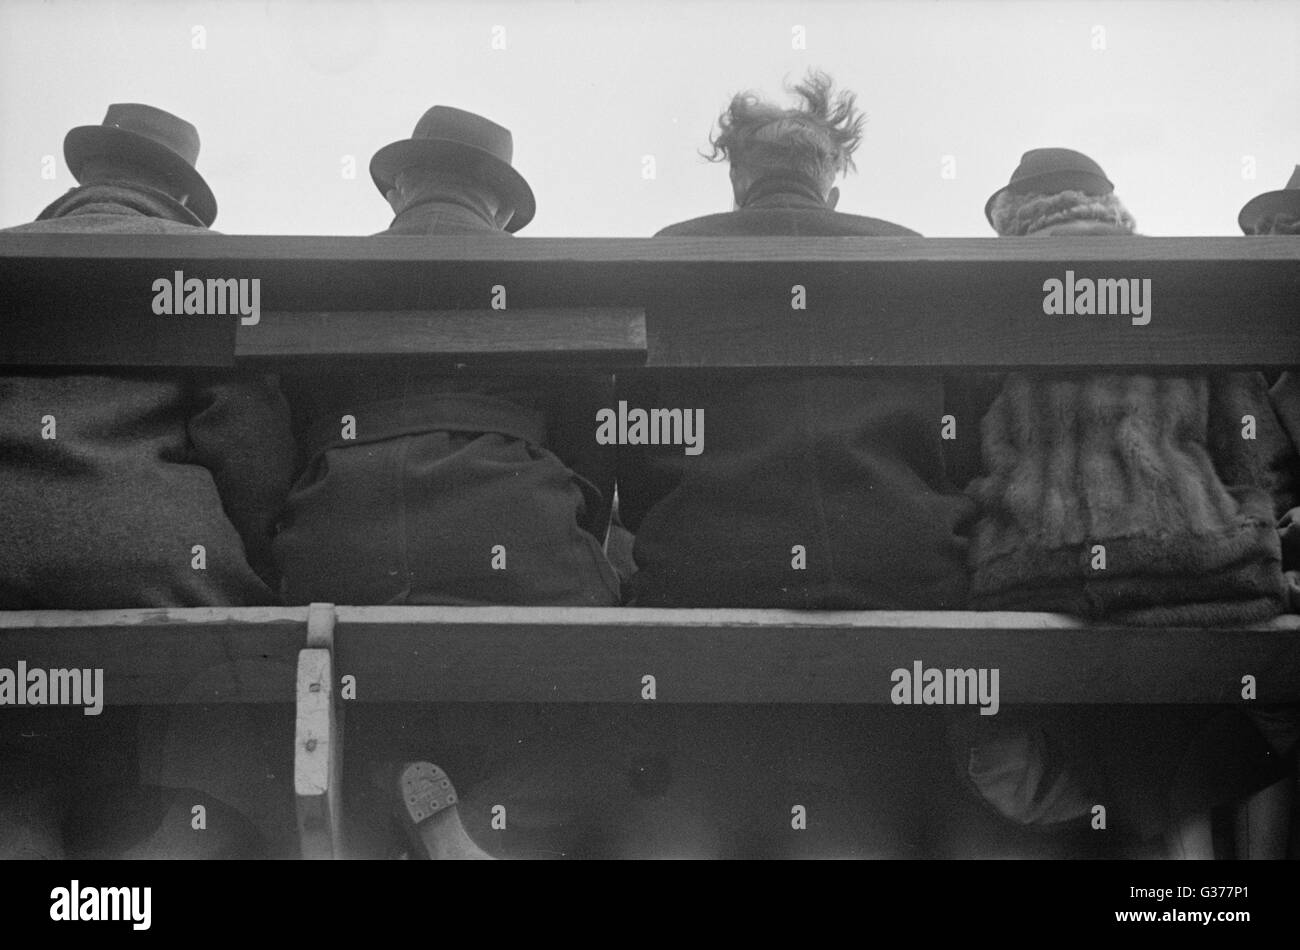 Spectators at football game, Annapolis, Maryland. Date 1937 Nov. - Stock Image